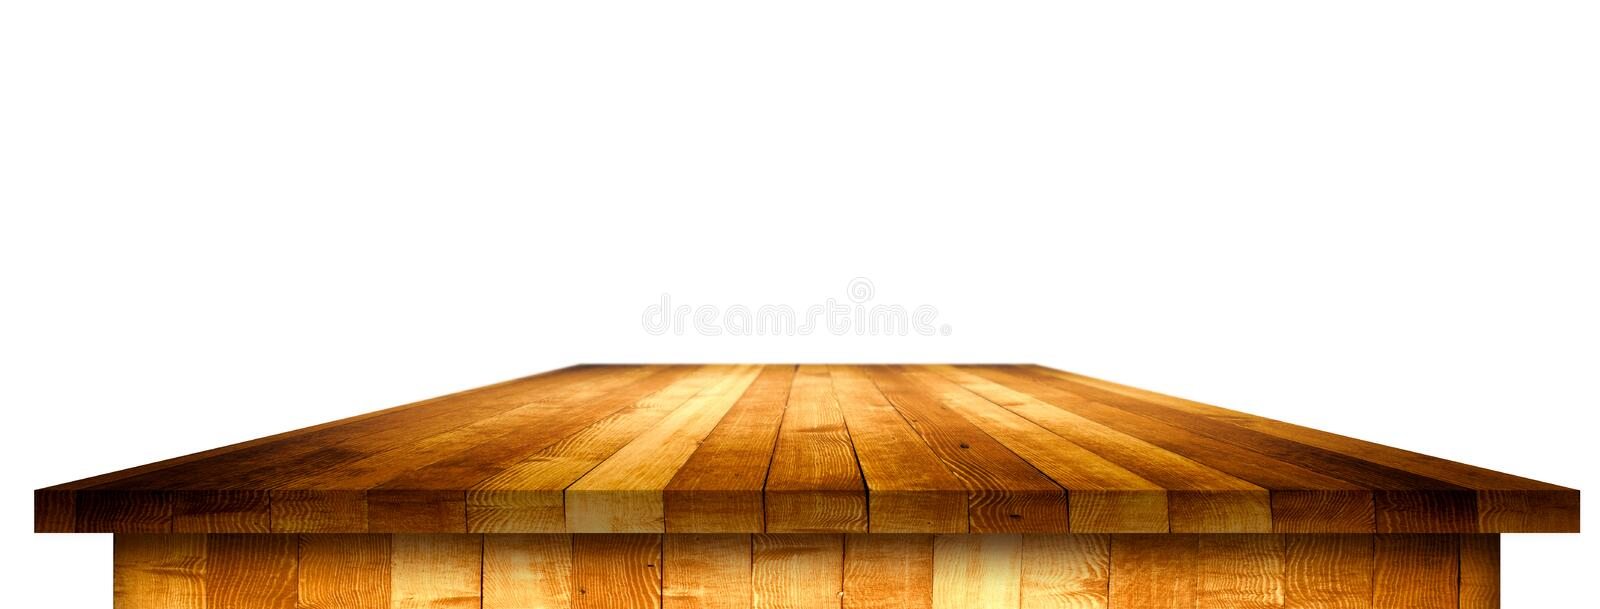 Empty wooden table perspective with clipping mask. For product placement or montage with focus to table. Wooden board surface royalty free stock images